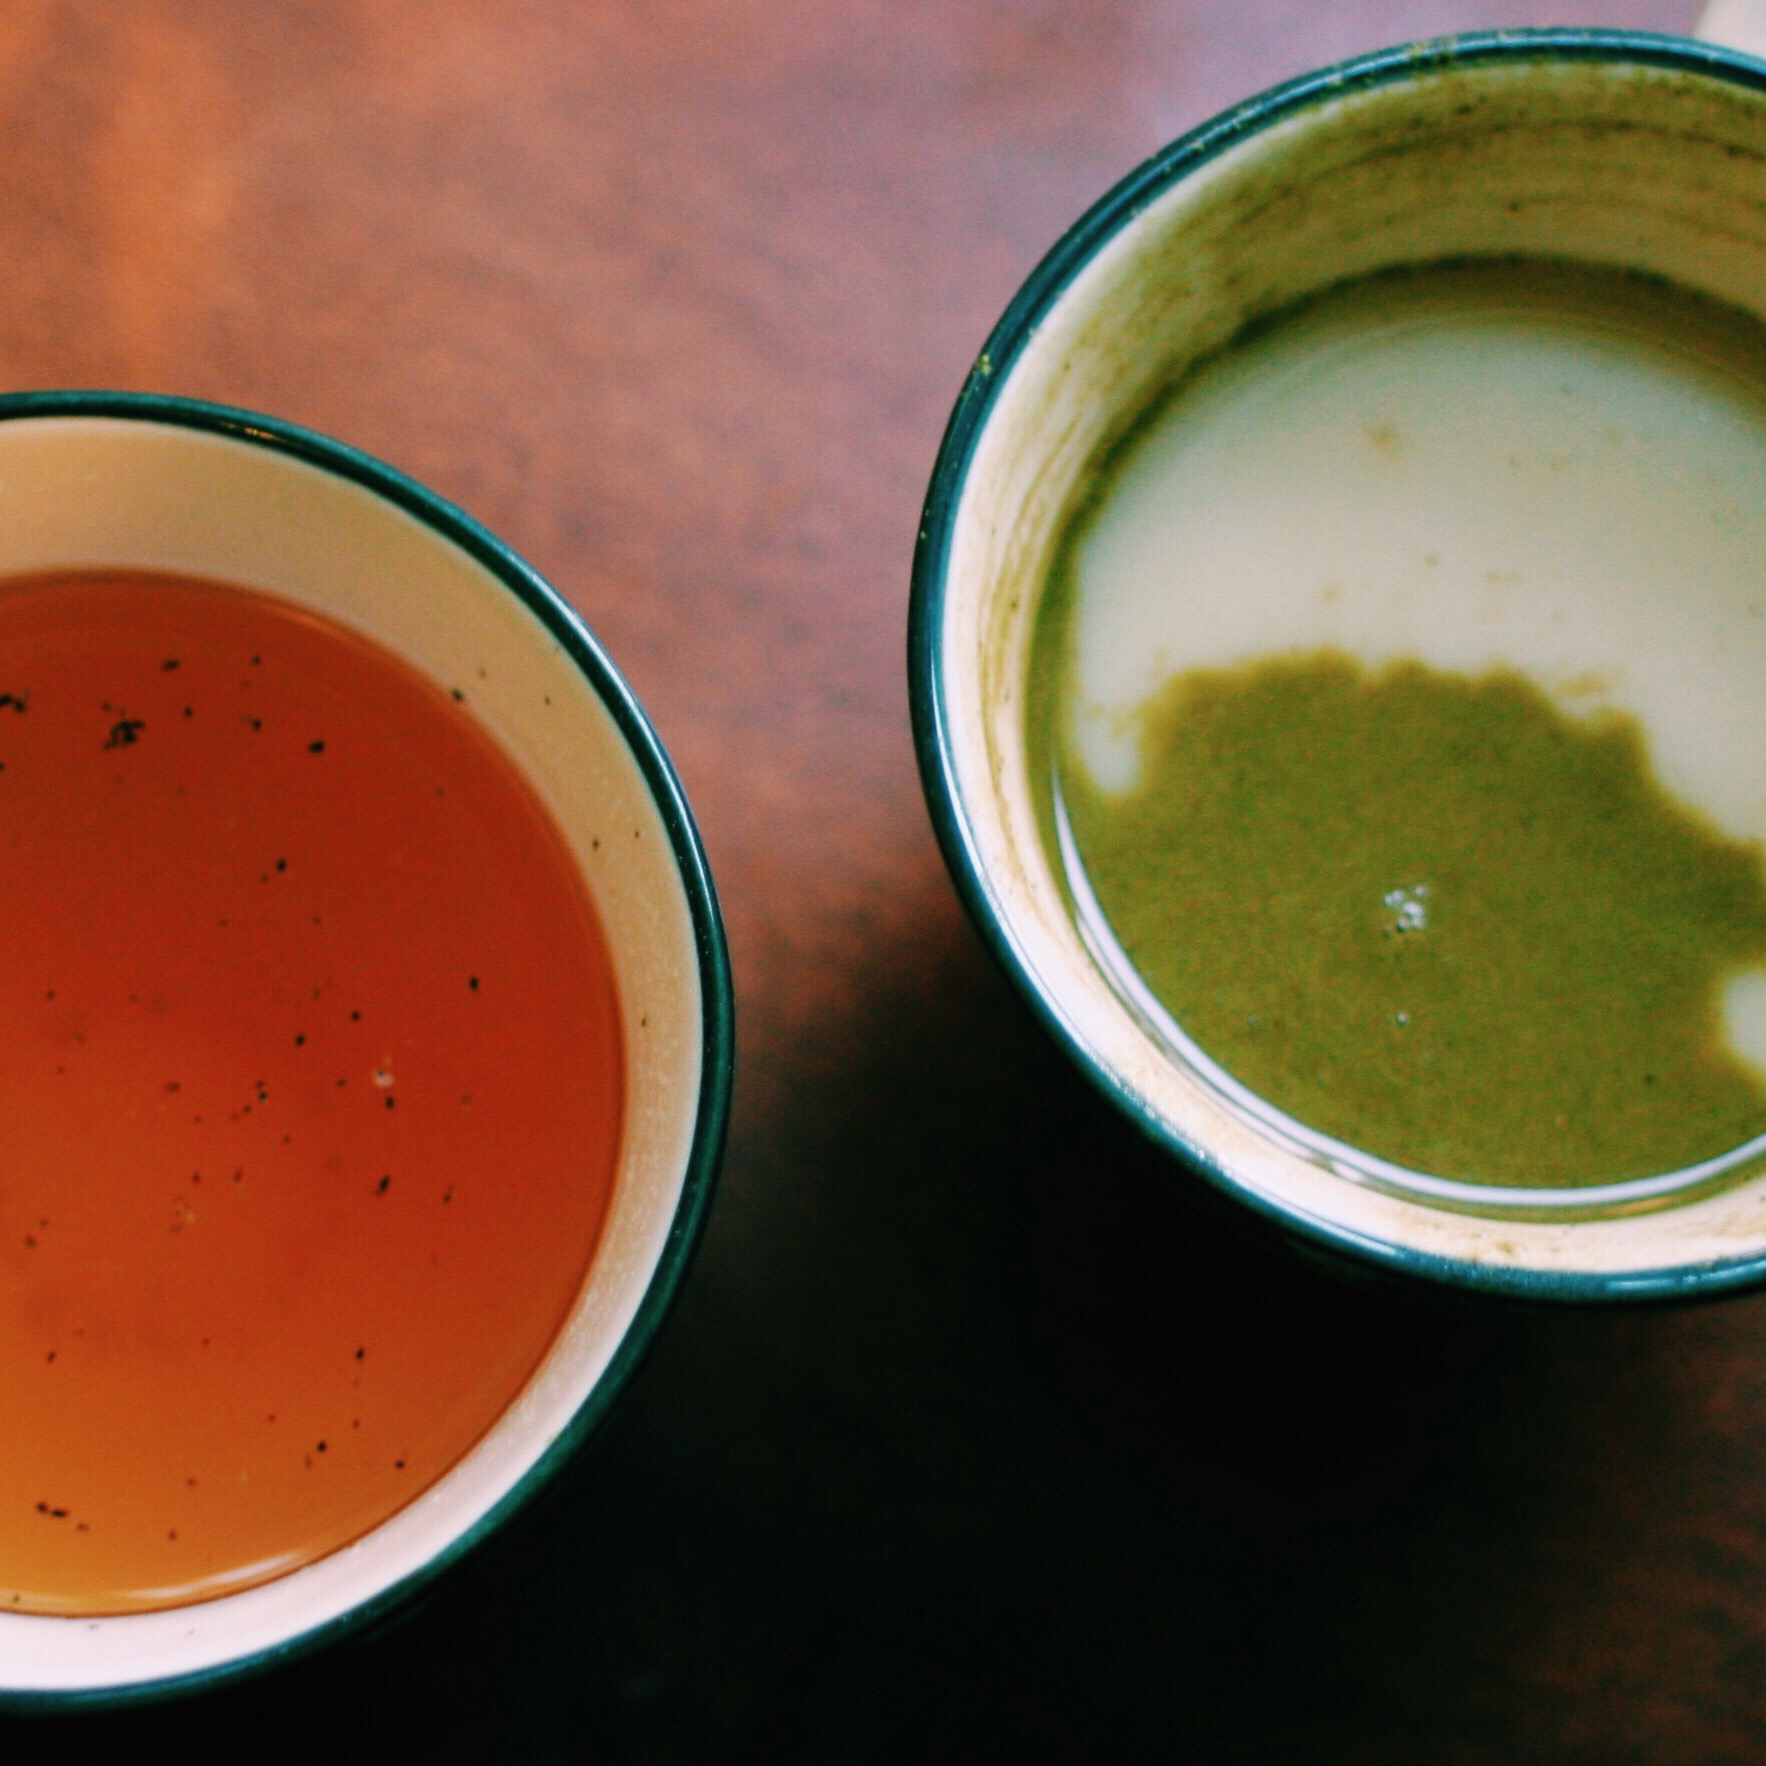 Homemade bone broth and matcha almond milk chai on my porch. Applause applause.